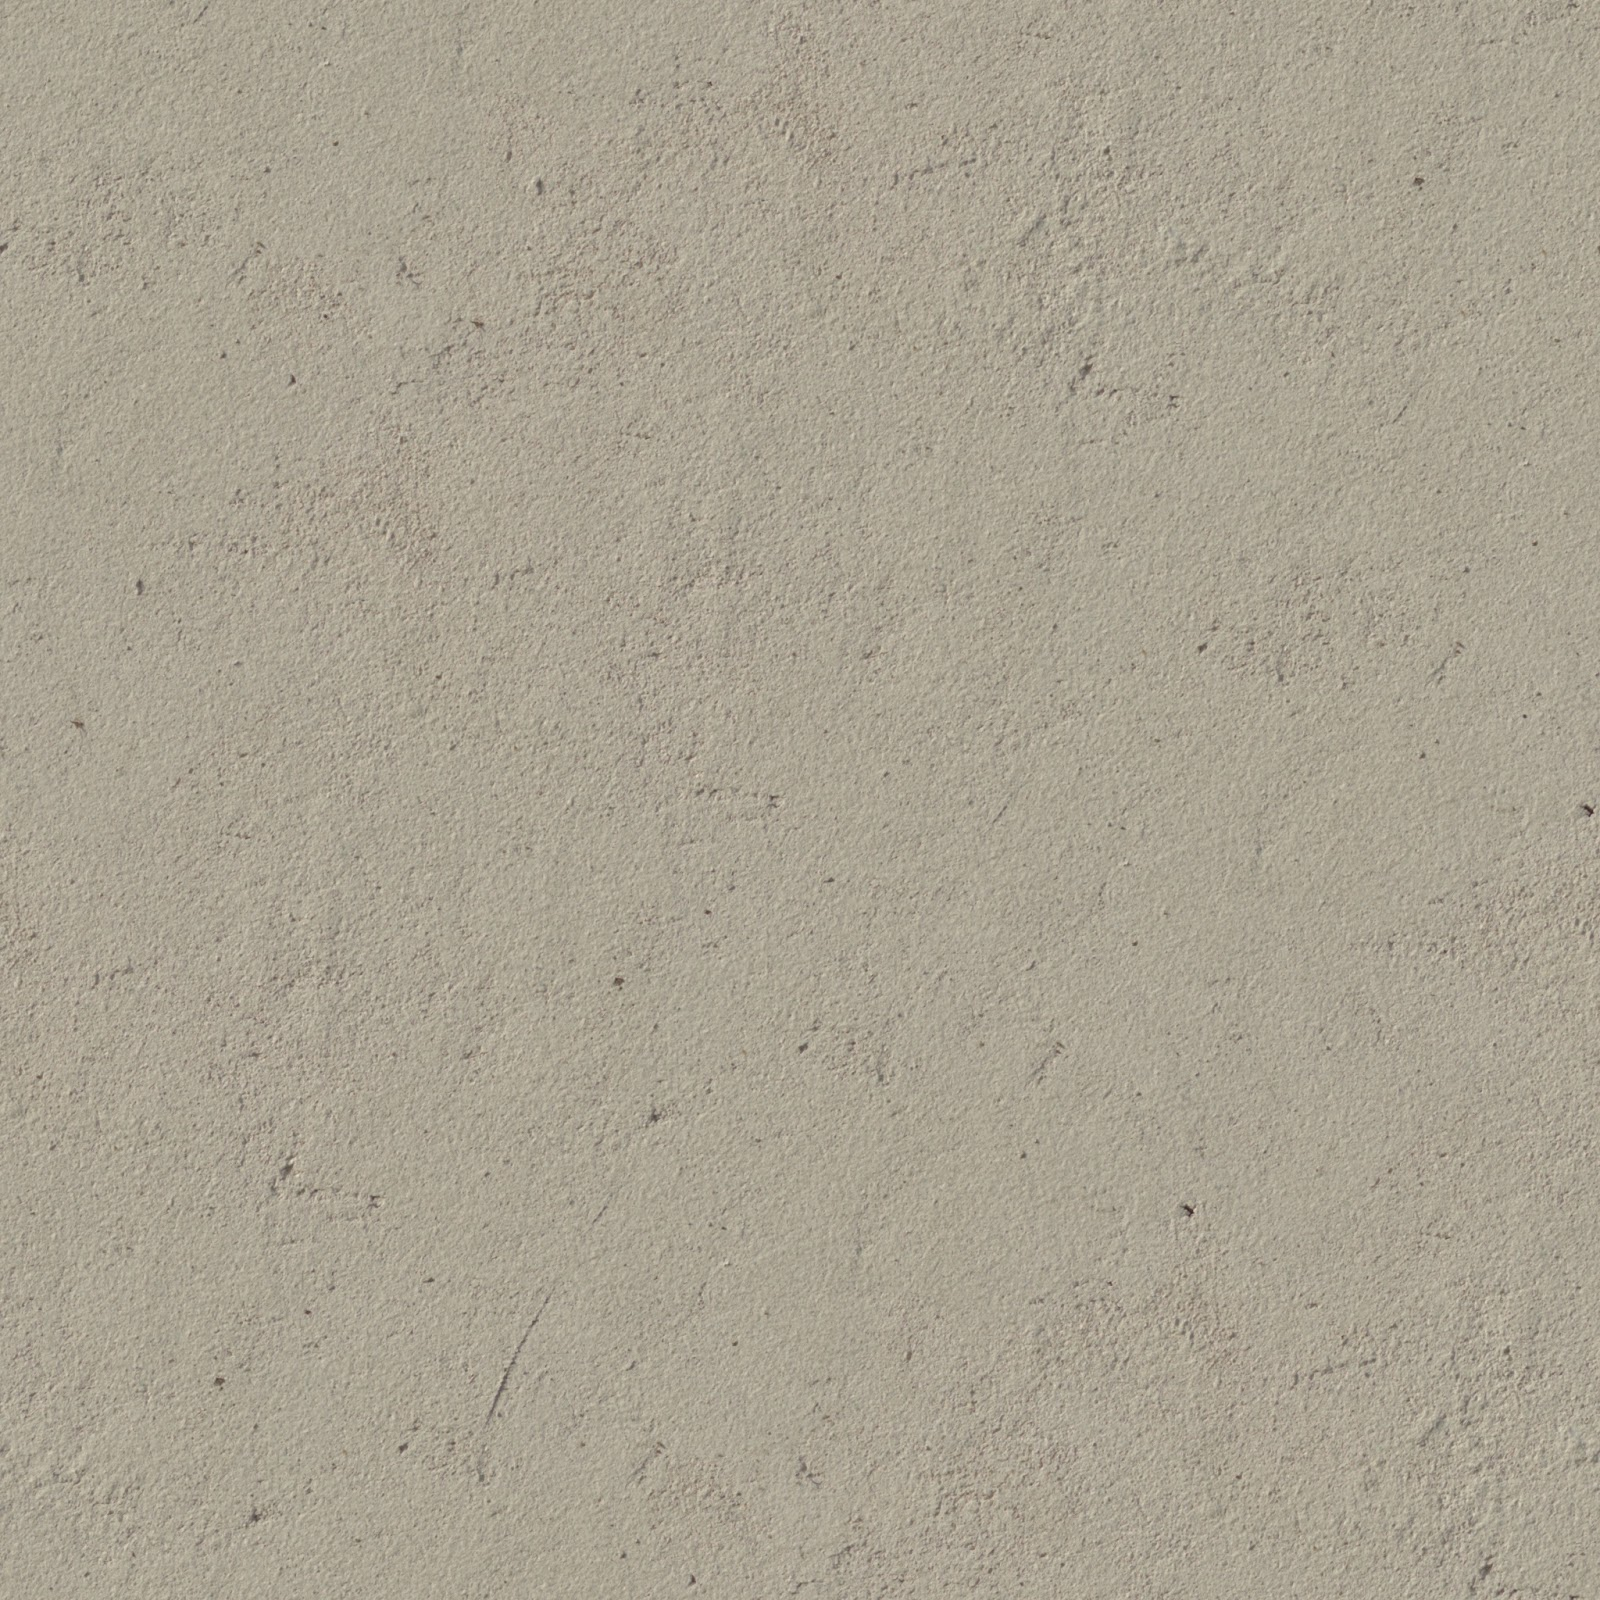 Stucco wall cream feb_2015 seamless texture 2048x2048